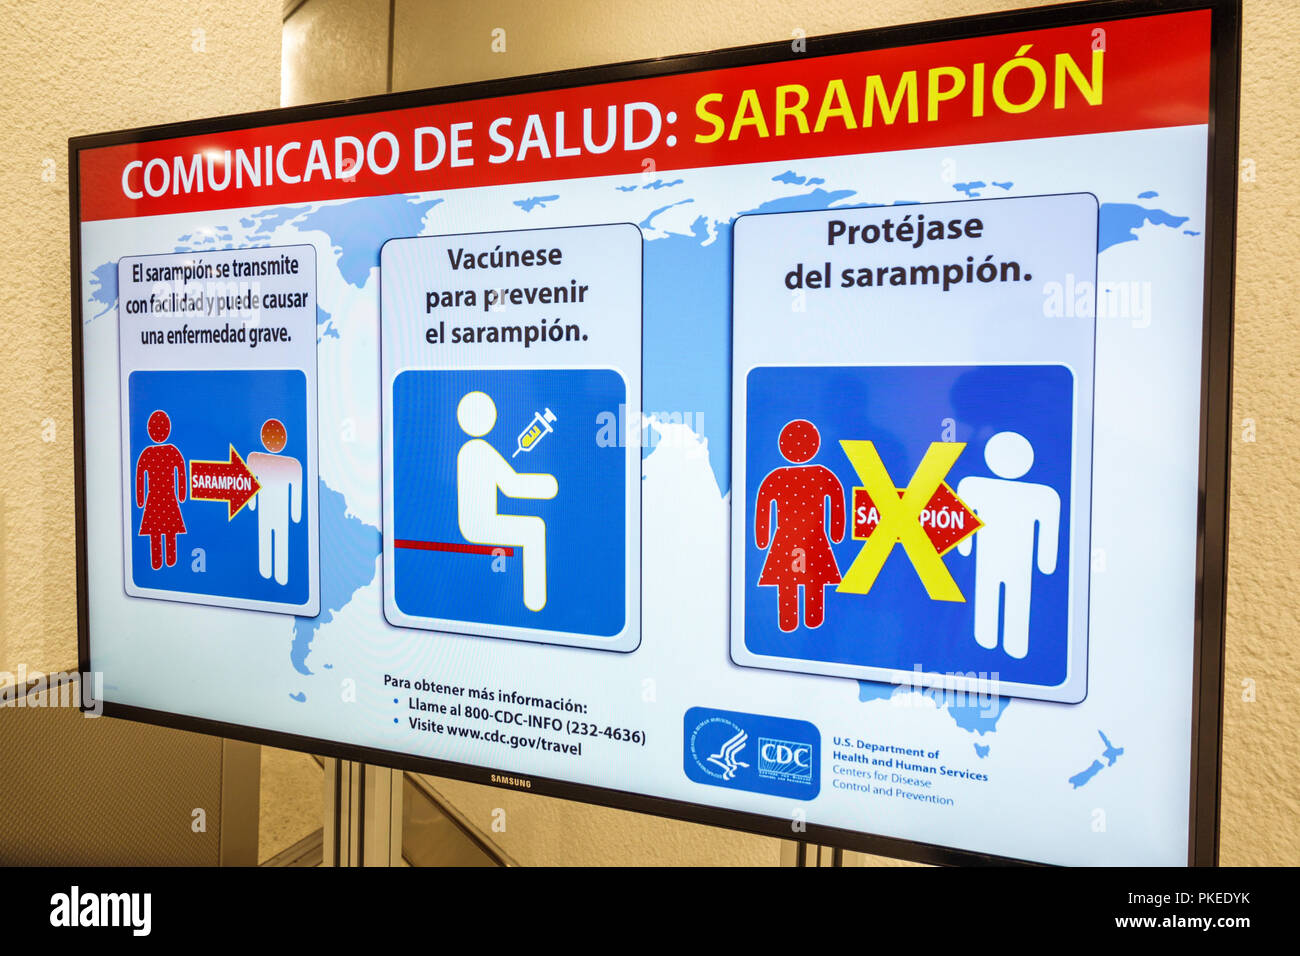 Miami Florida International Airport MIA health information sign CDC Center for Disease Control sarampion measles warning vaccine Spanish language - Stock Image